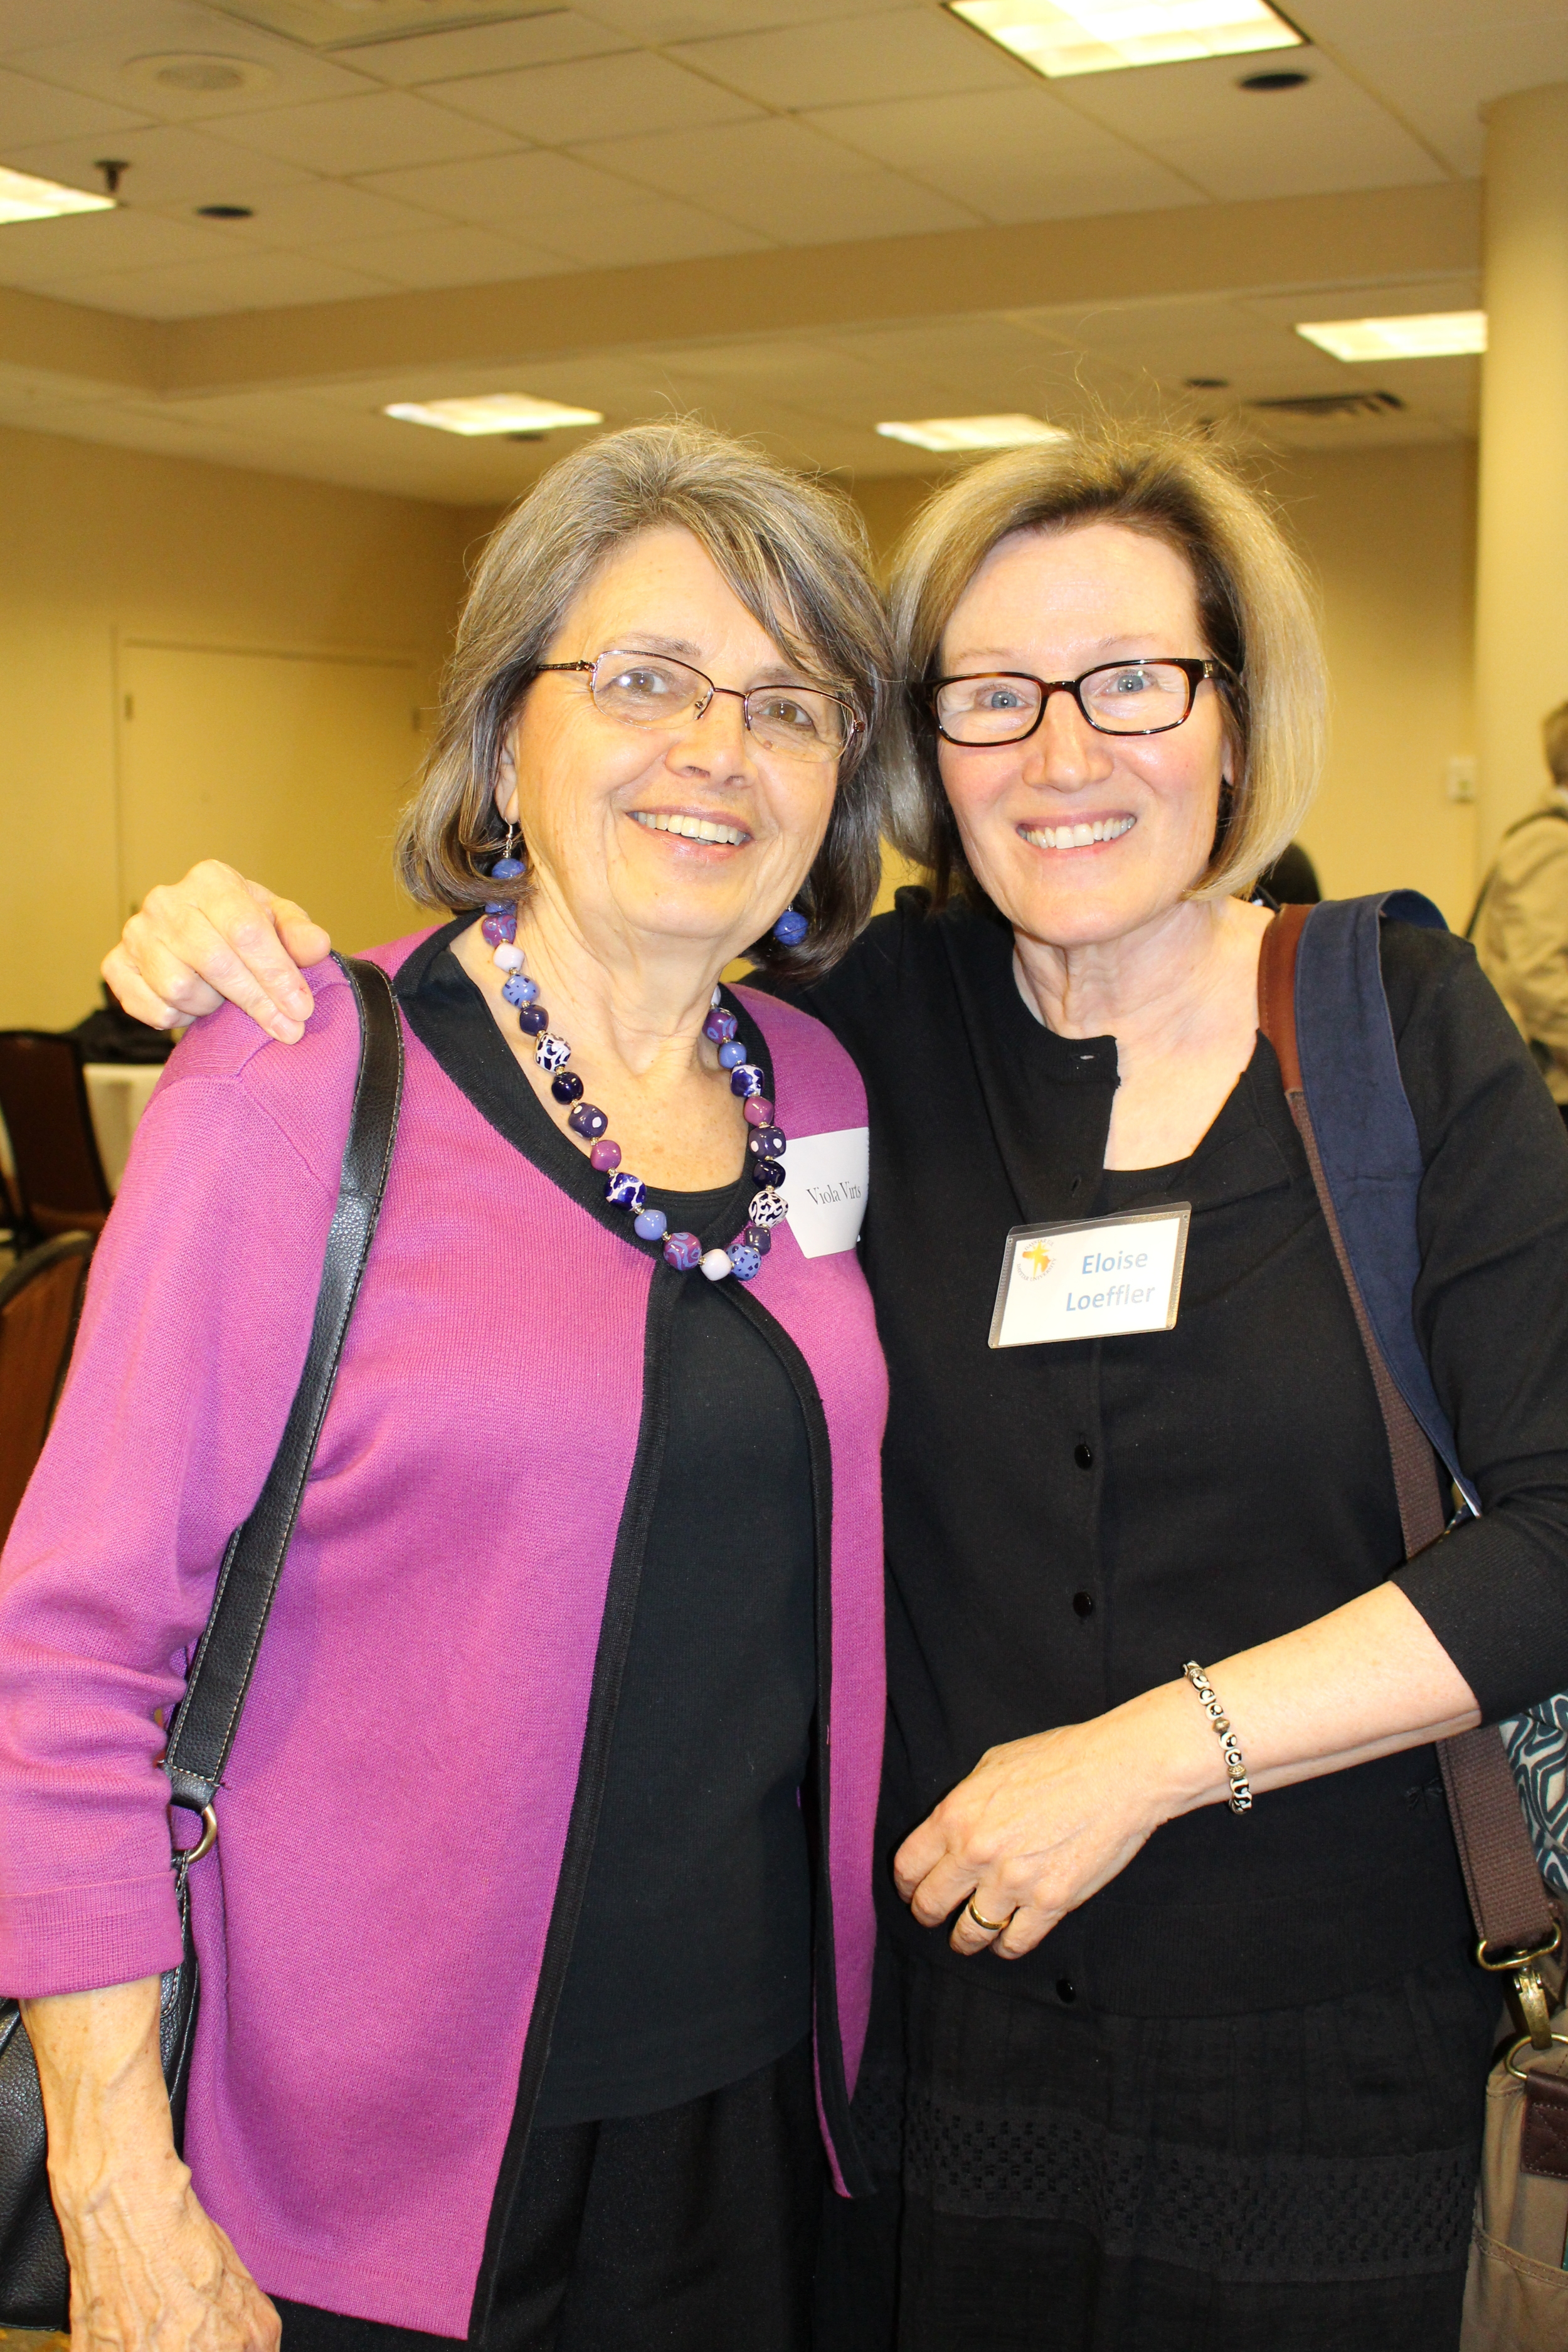 Viola Virts and Board Secretary Dr. Eloise Loeffler